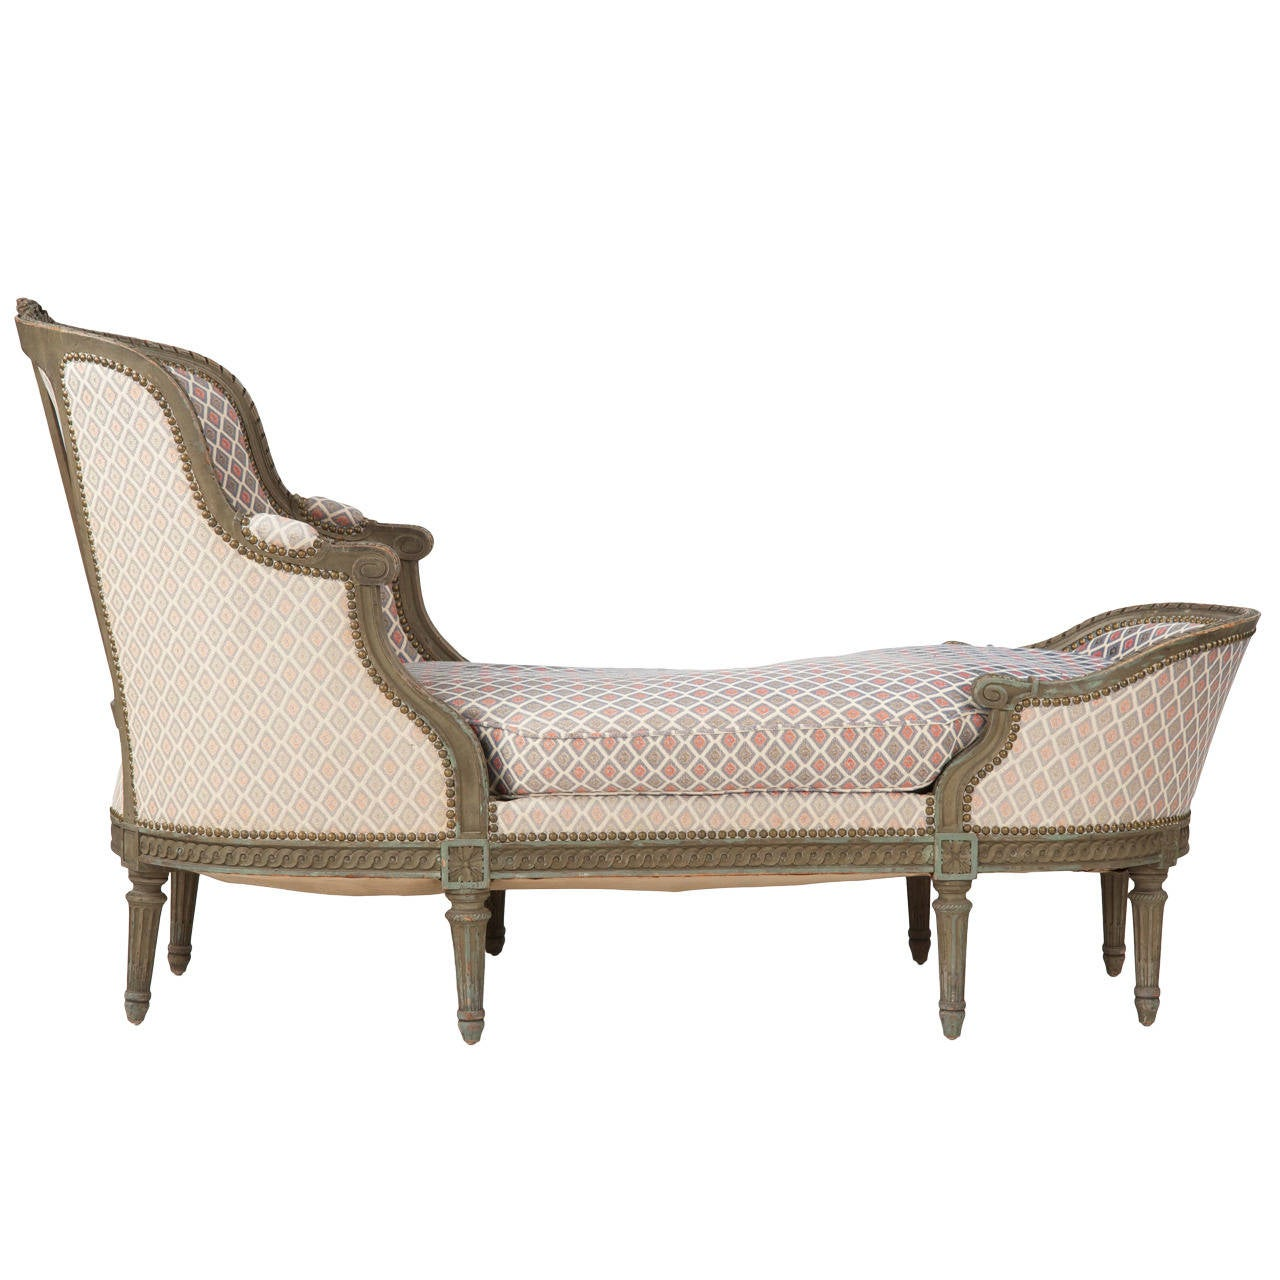 French louis xvi style painted antique chaise lounge for Antique french chaise lounge